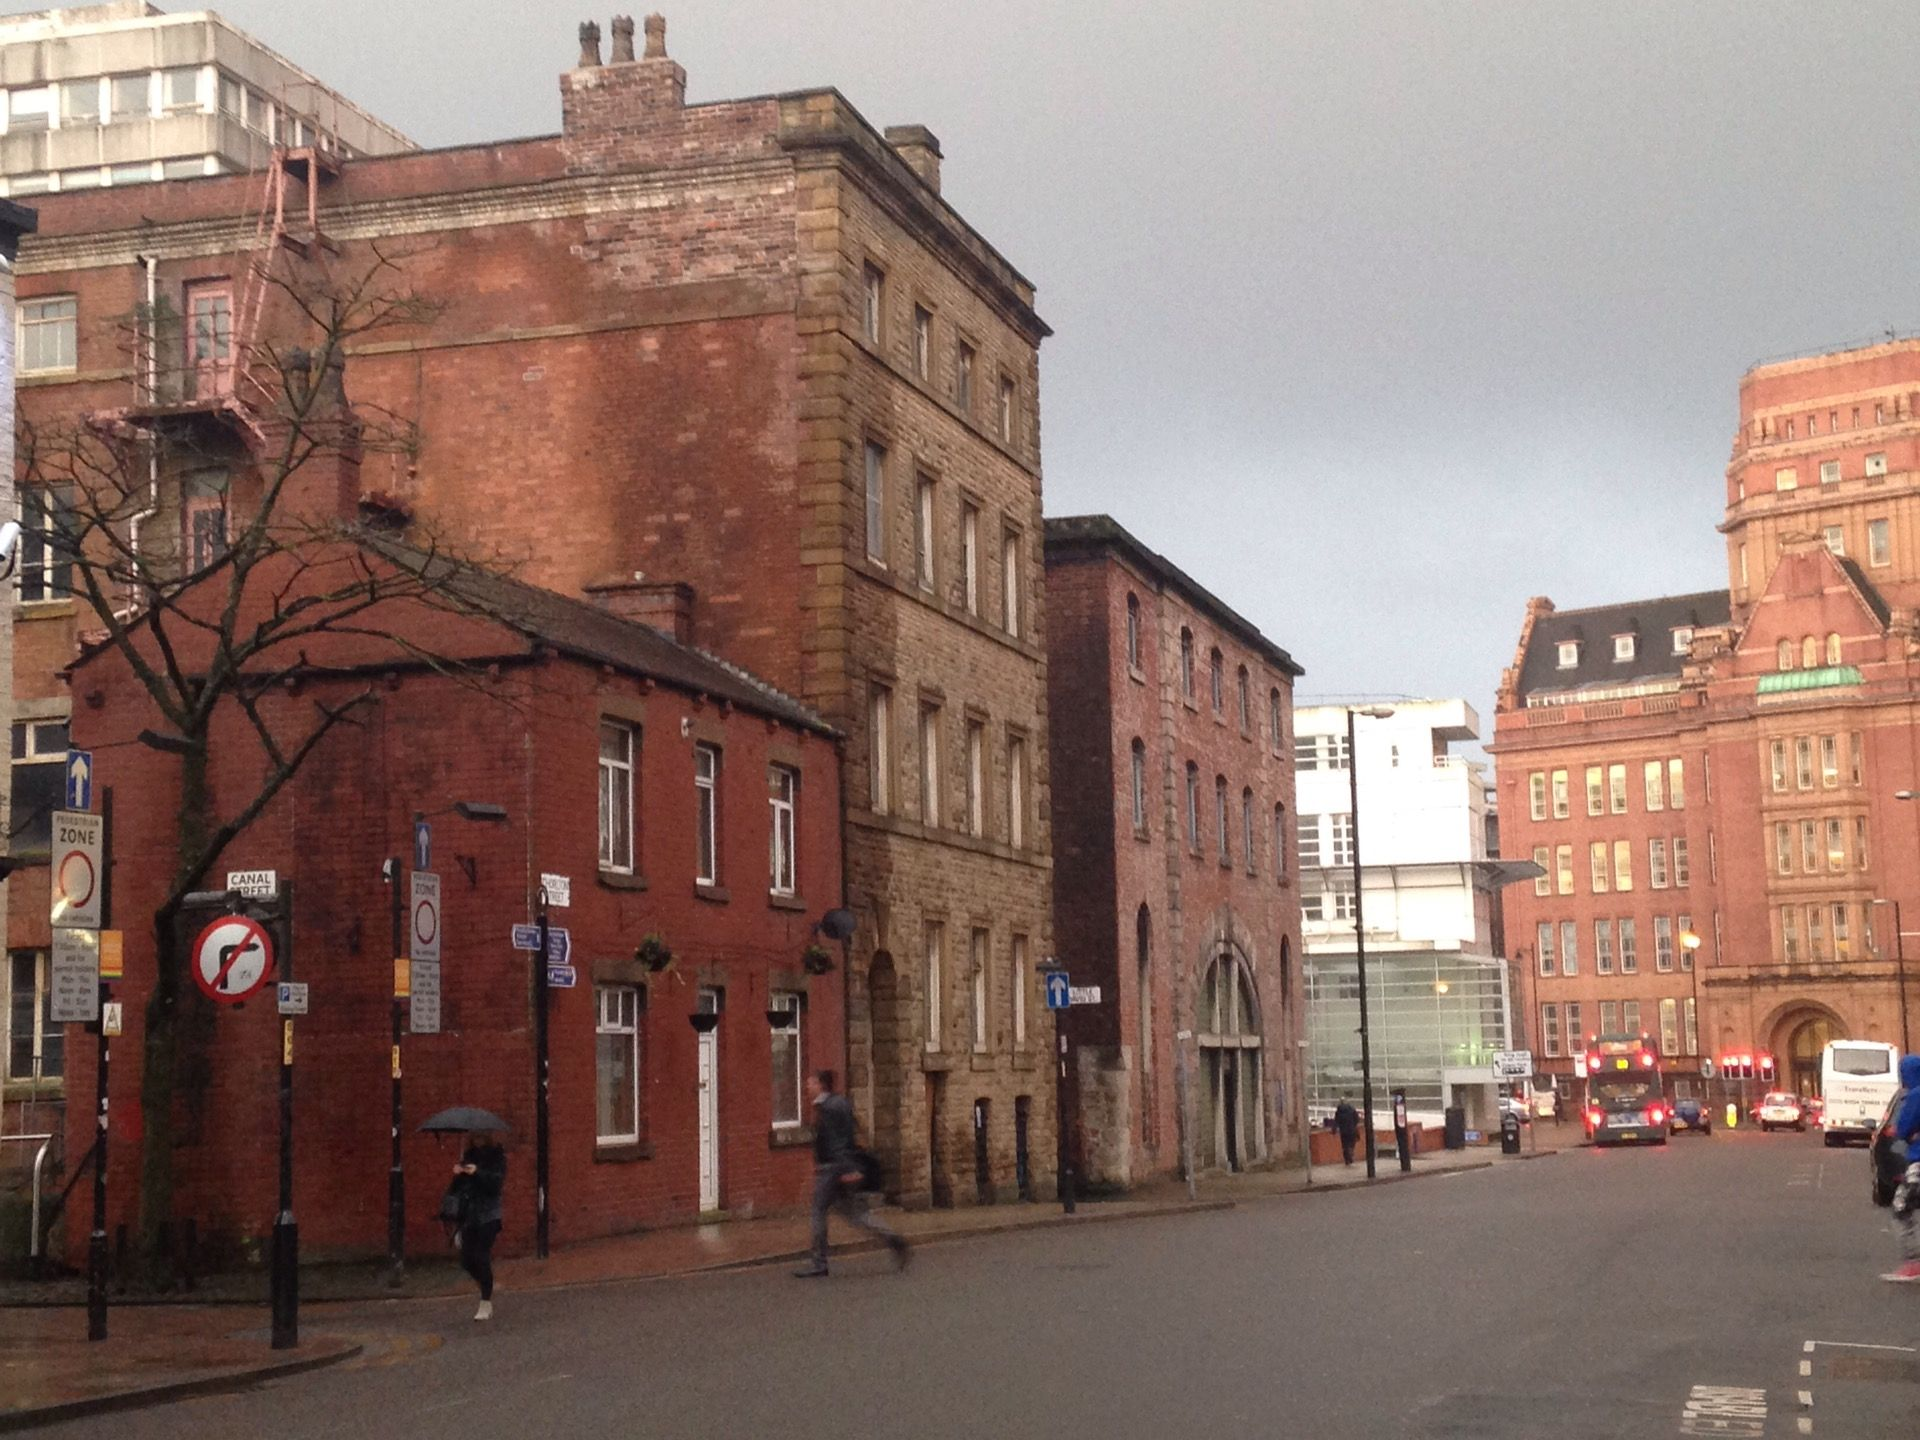 Manchester City Centre in Greater Manchester, Greater Manchester